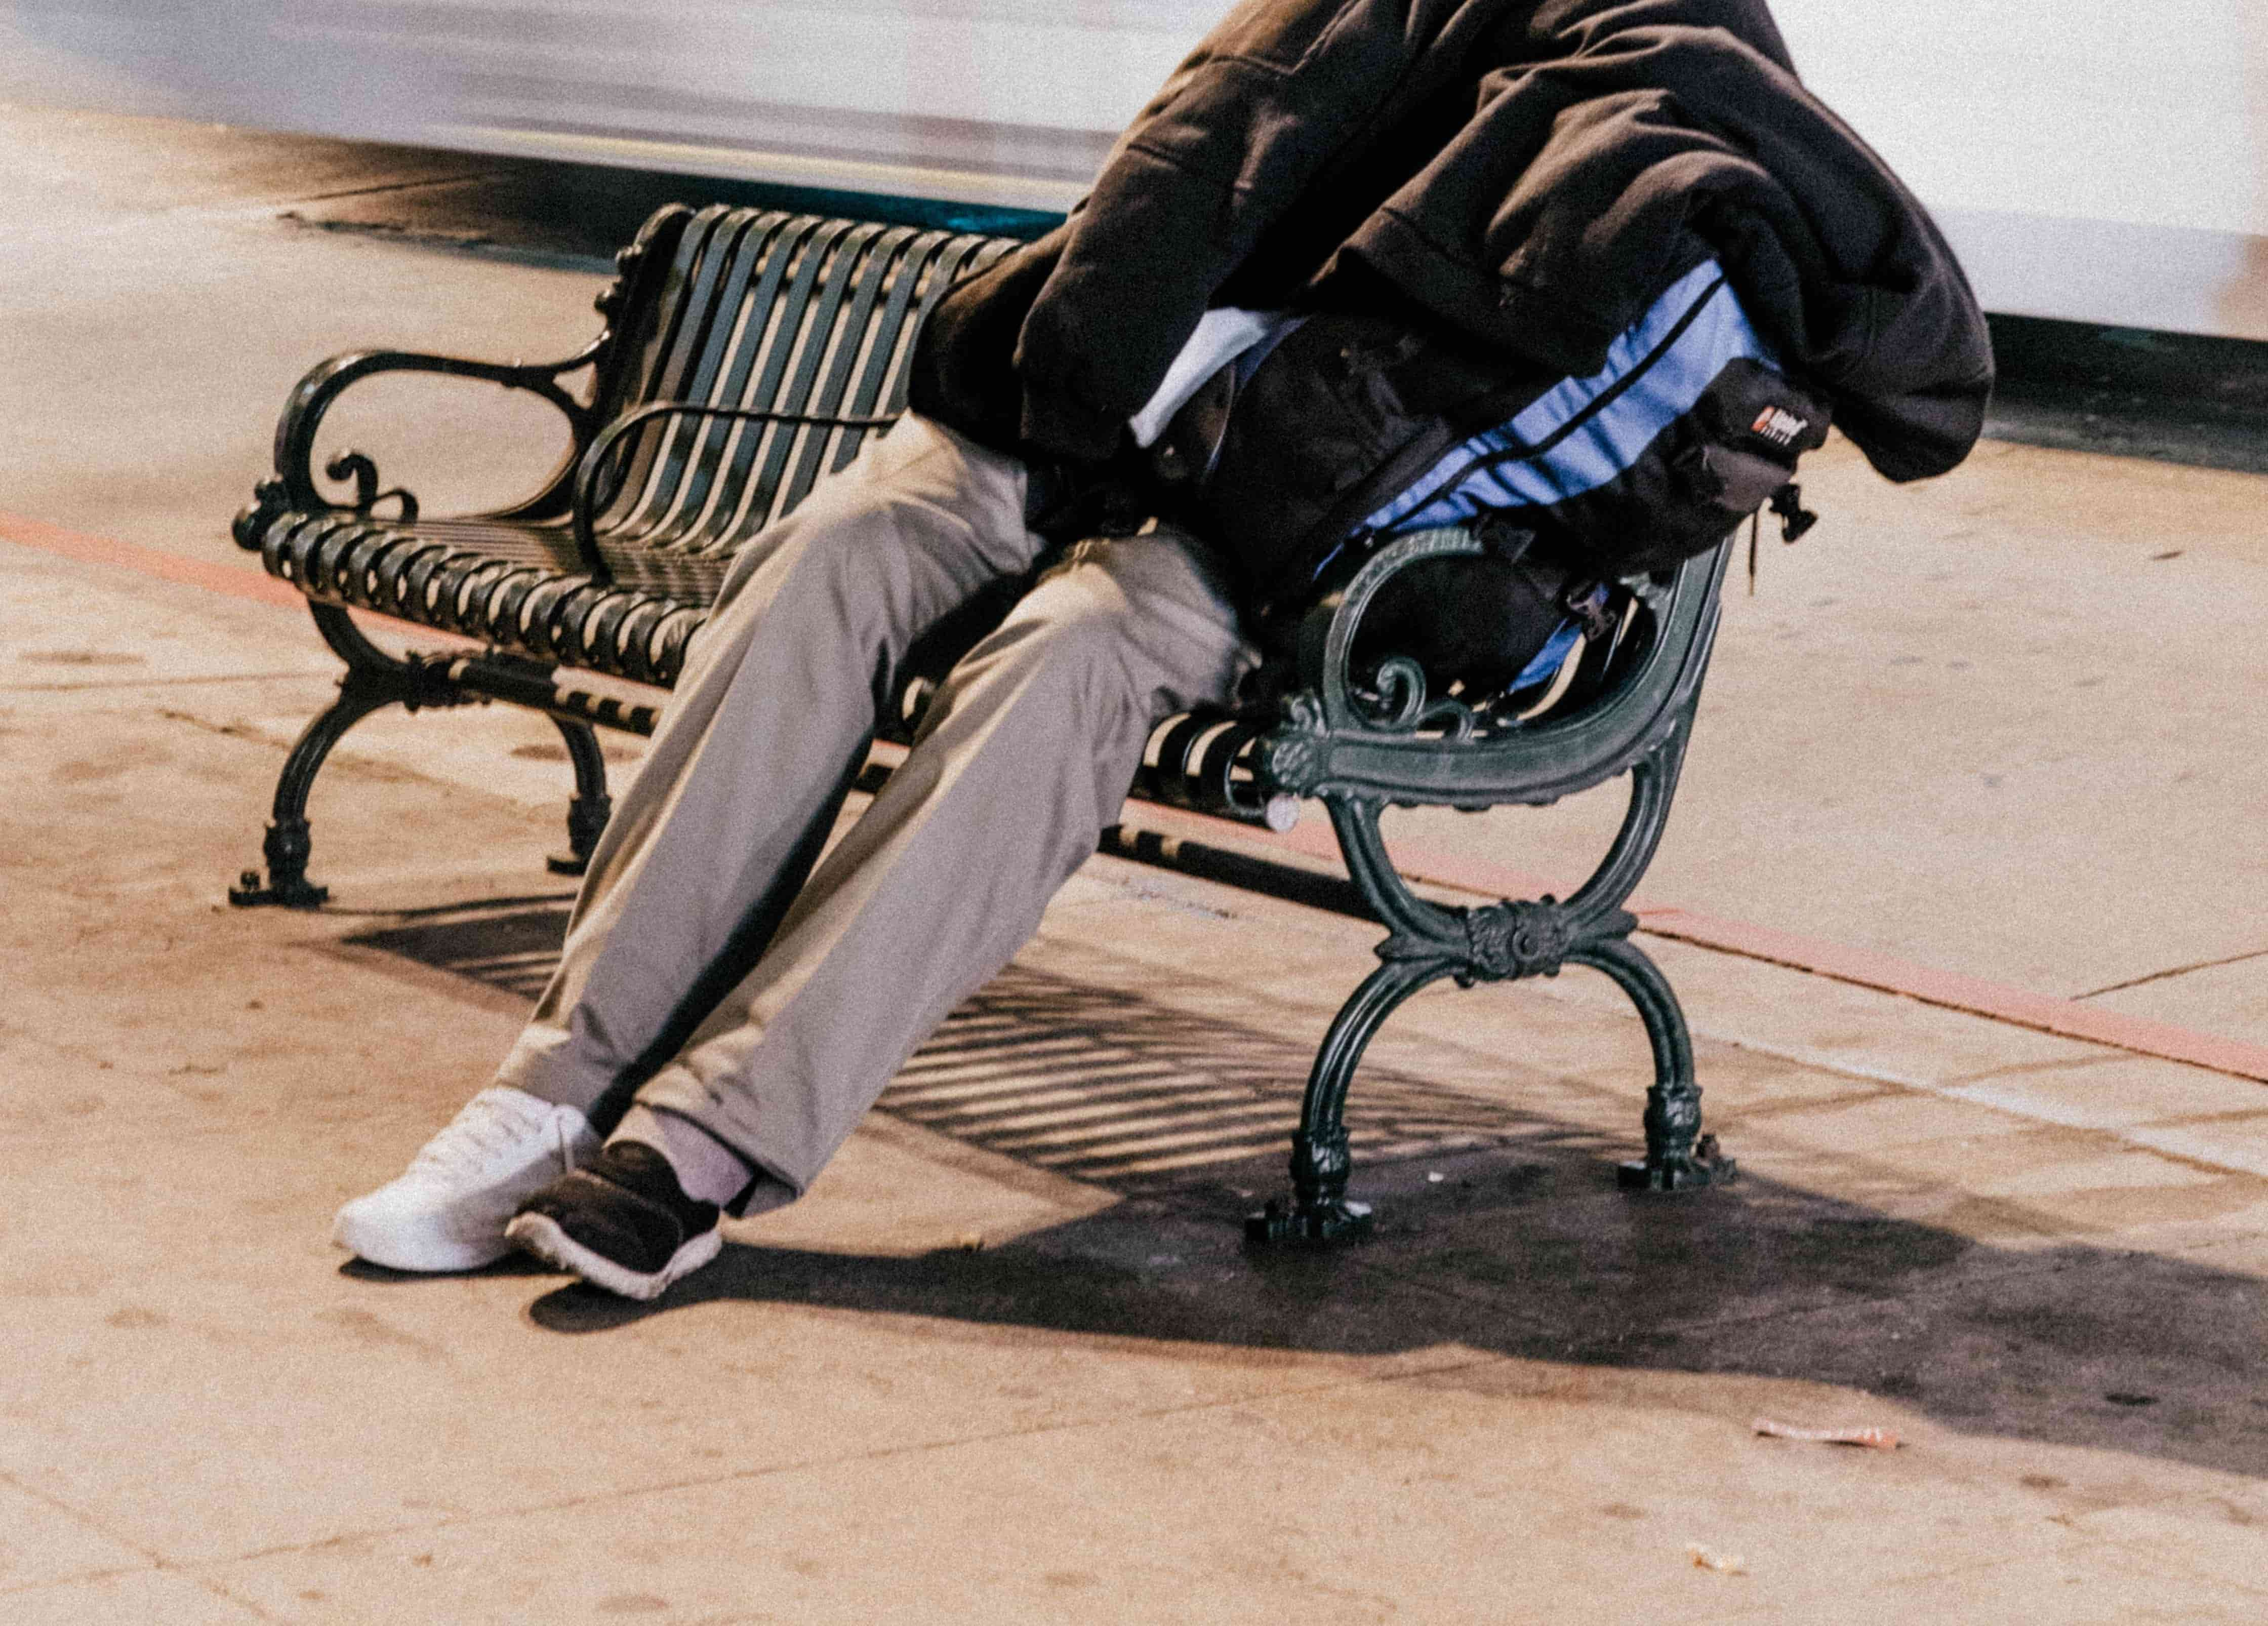 A photograph of a person sleeping on a public bench